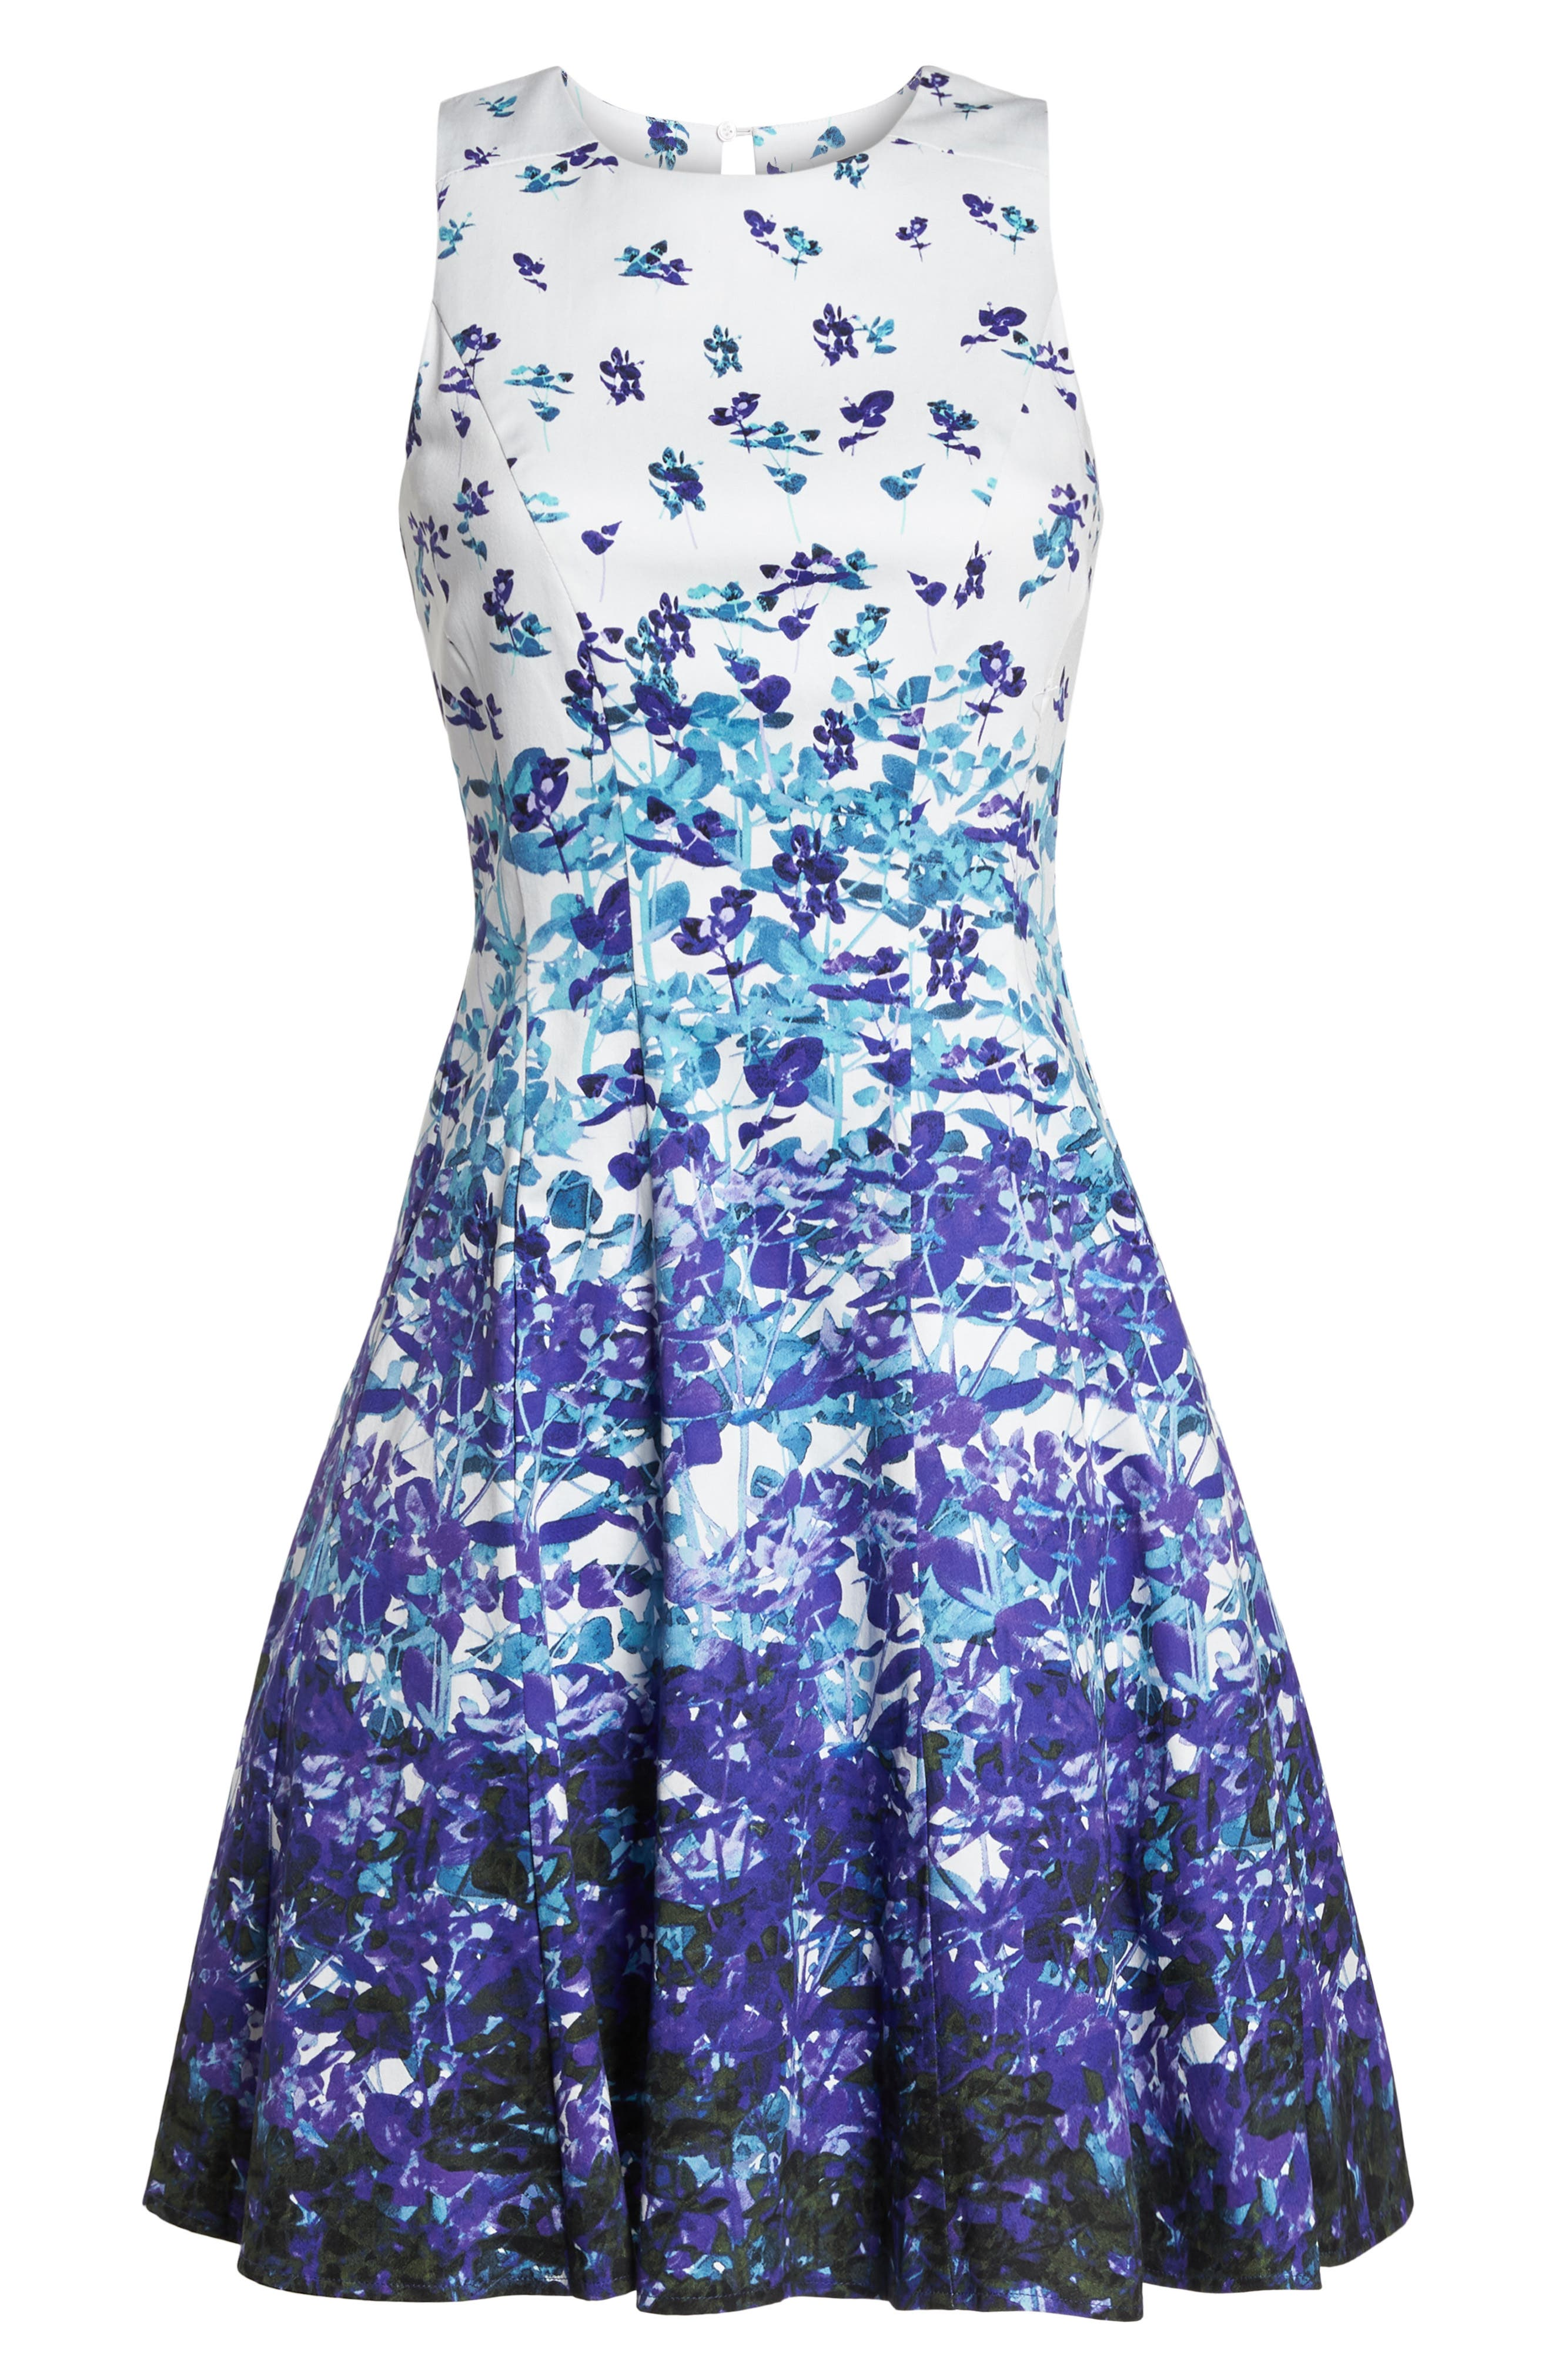 Floral Sateen Fit & Flare Dress,                             Alternate thumbnail 7, color,                             Soft White/ Purple